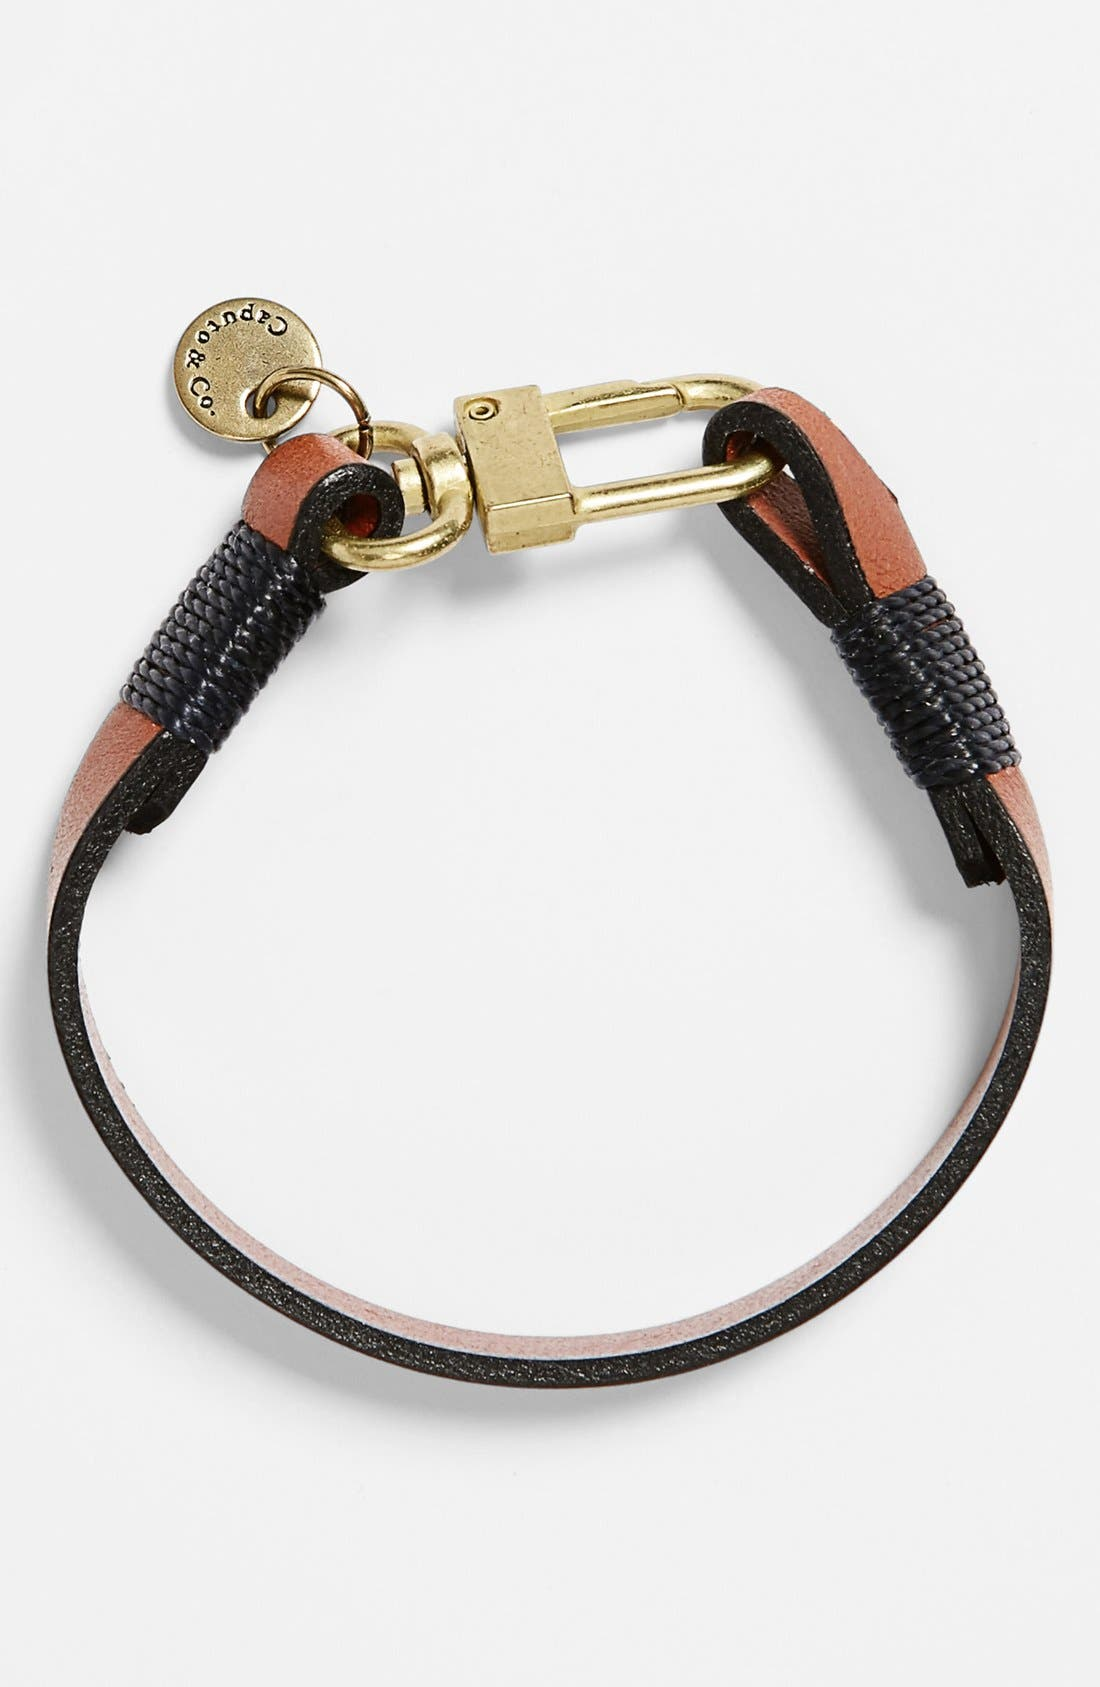 Main Image - CAPUTO & CO 'The Clean' Leather Bracelet